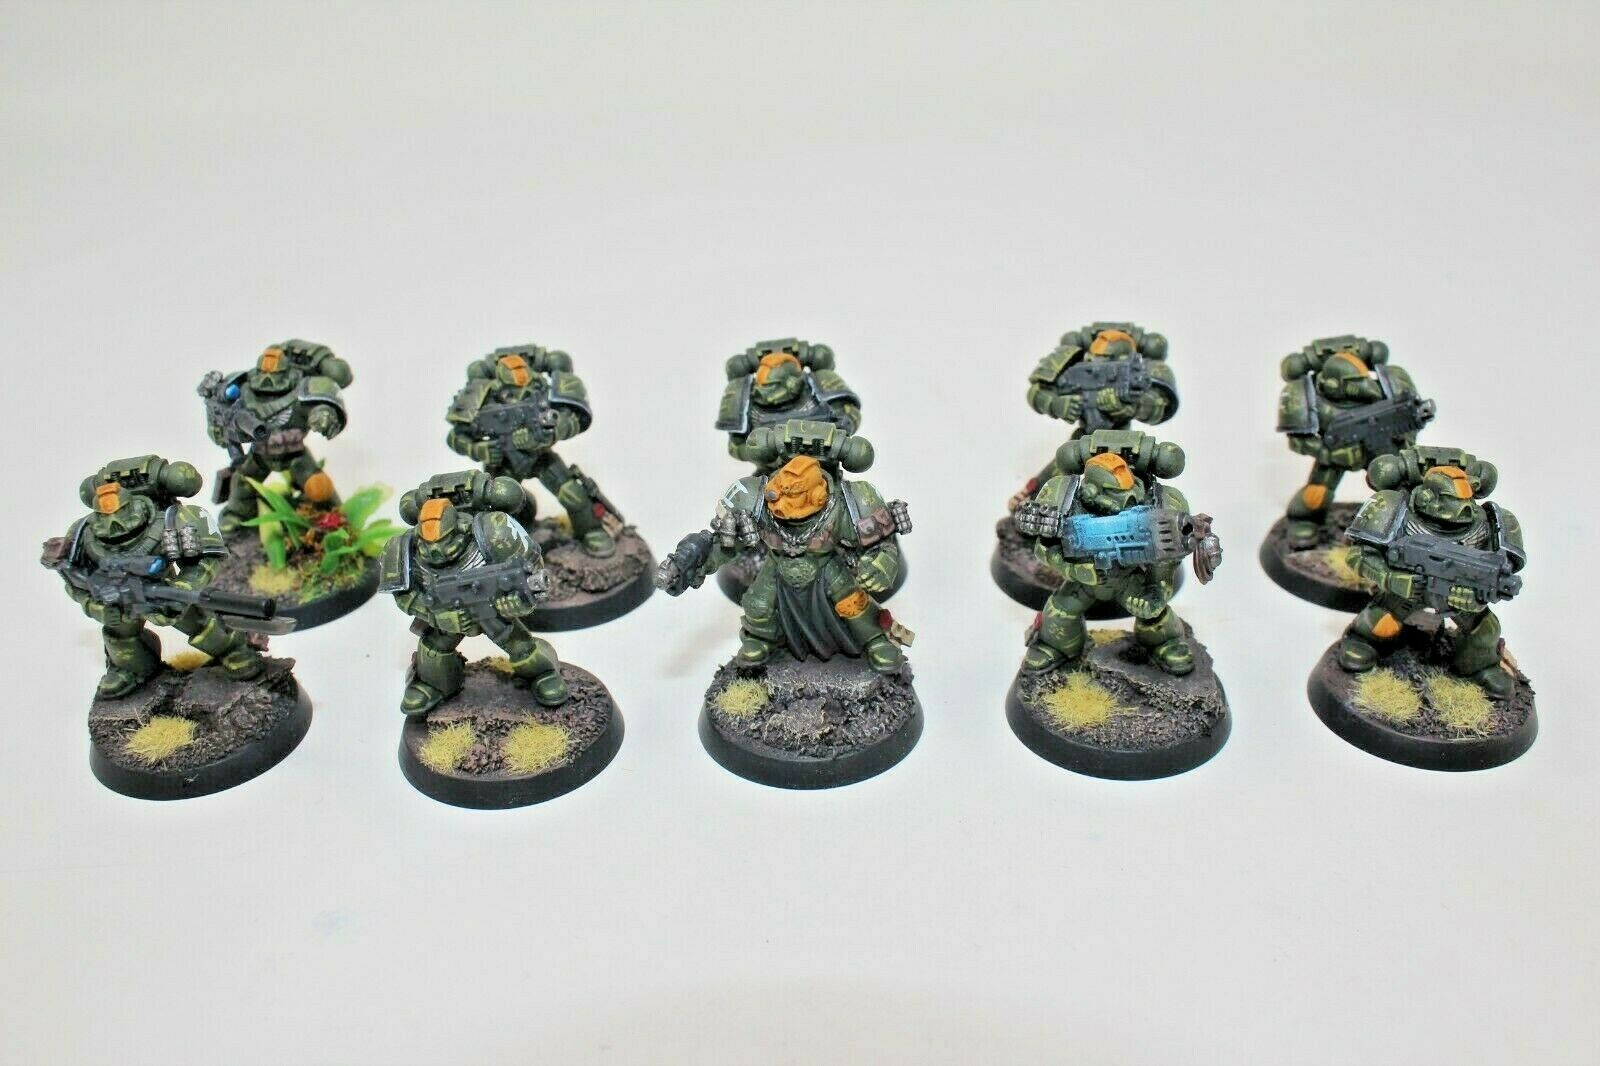 Warhammer spazio Marines Tactical  Squad Well Painted - JYS41  fino al 65% di sconto